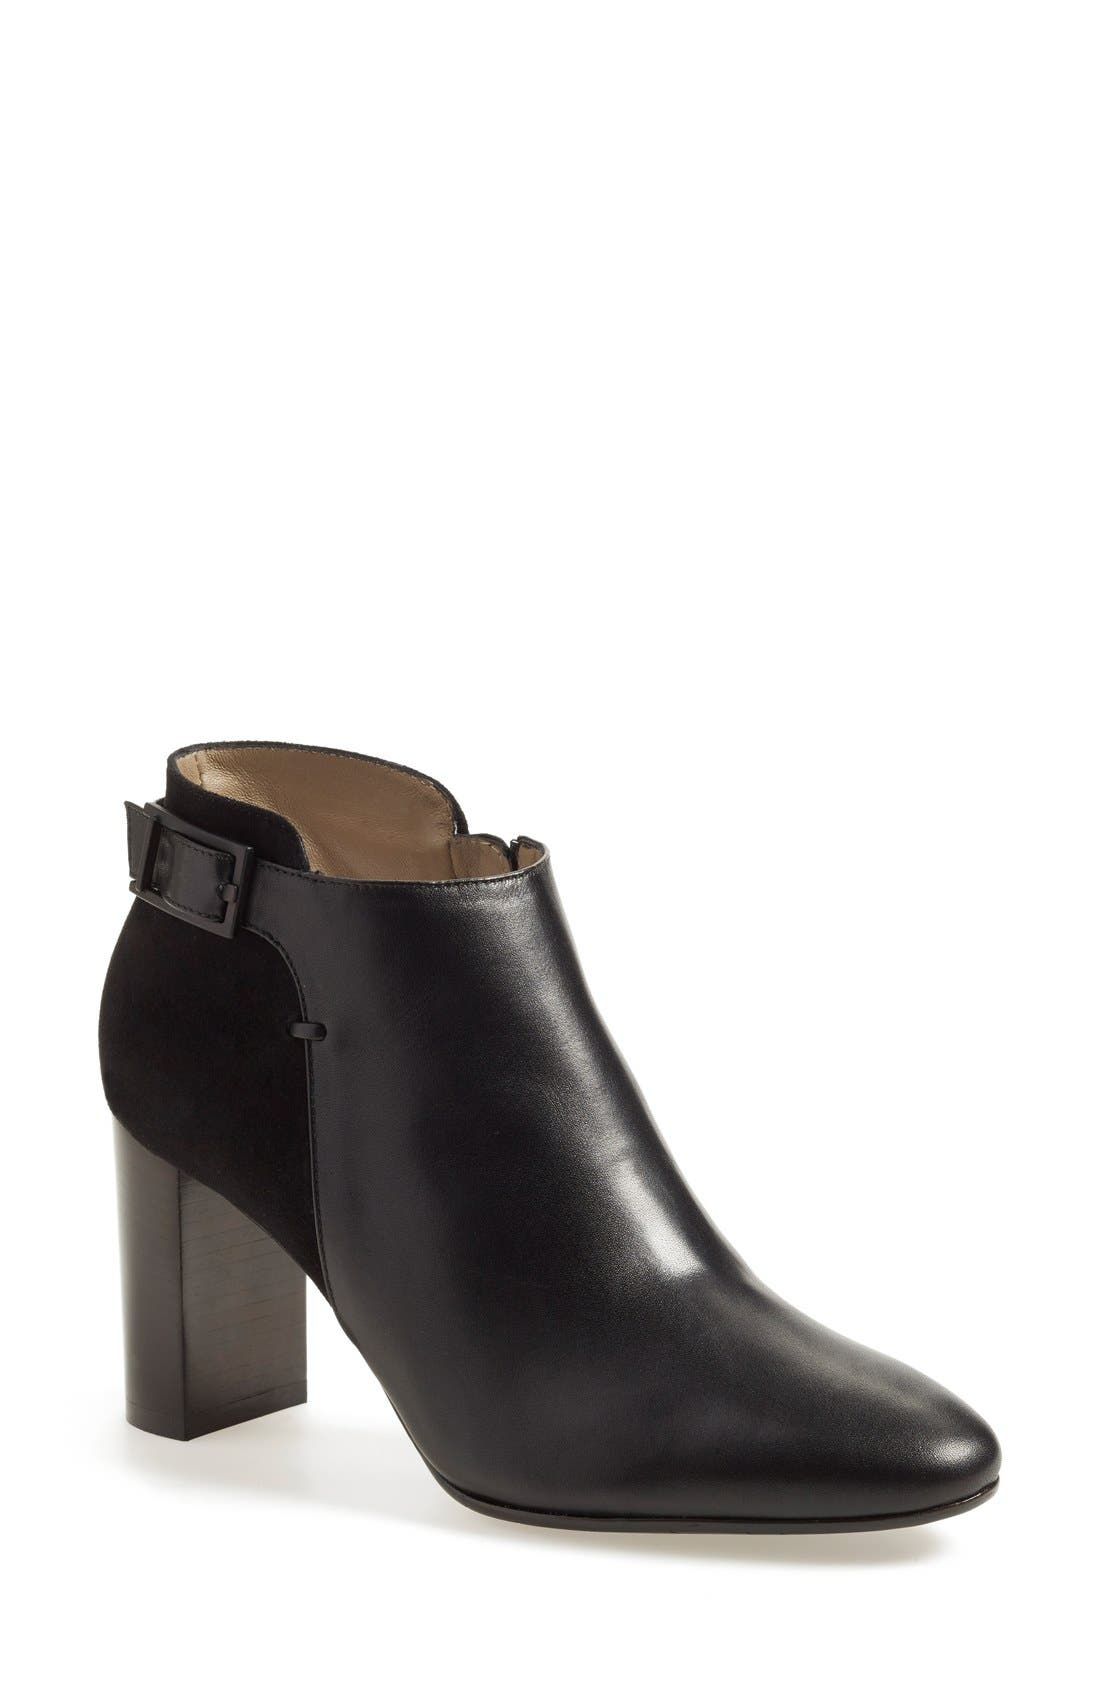 Alternate Image 1 Selected - Aquatalia 'Verona' Weatherproof Bootie (Women) (Nordstrom Exclusive)